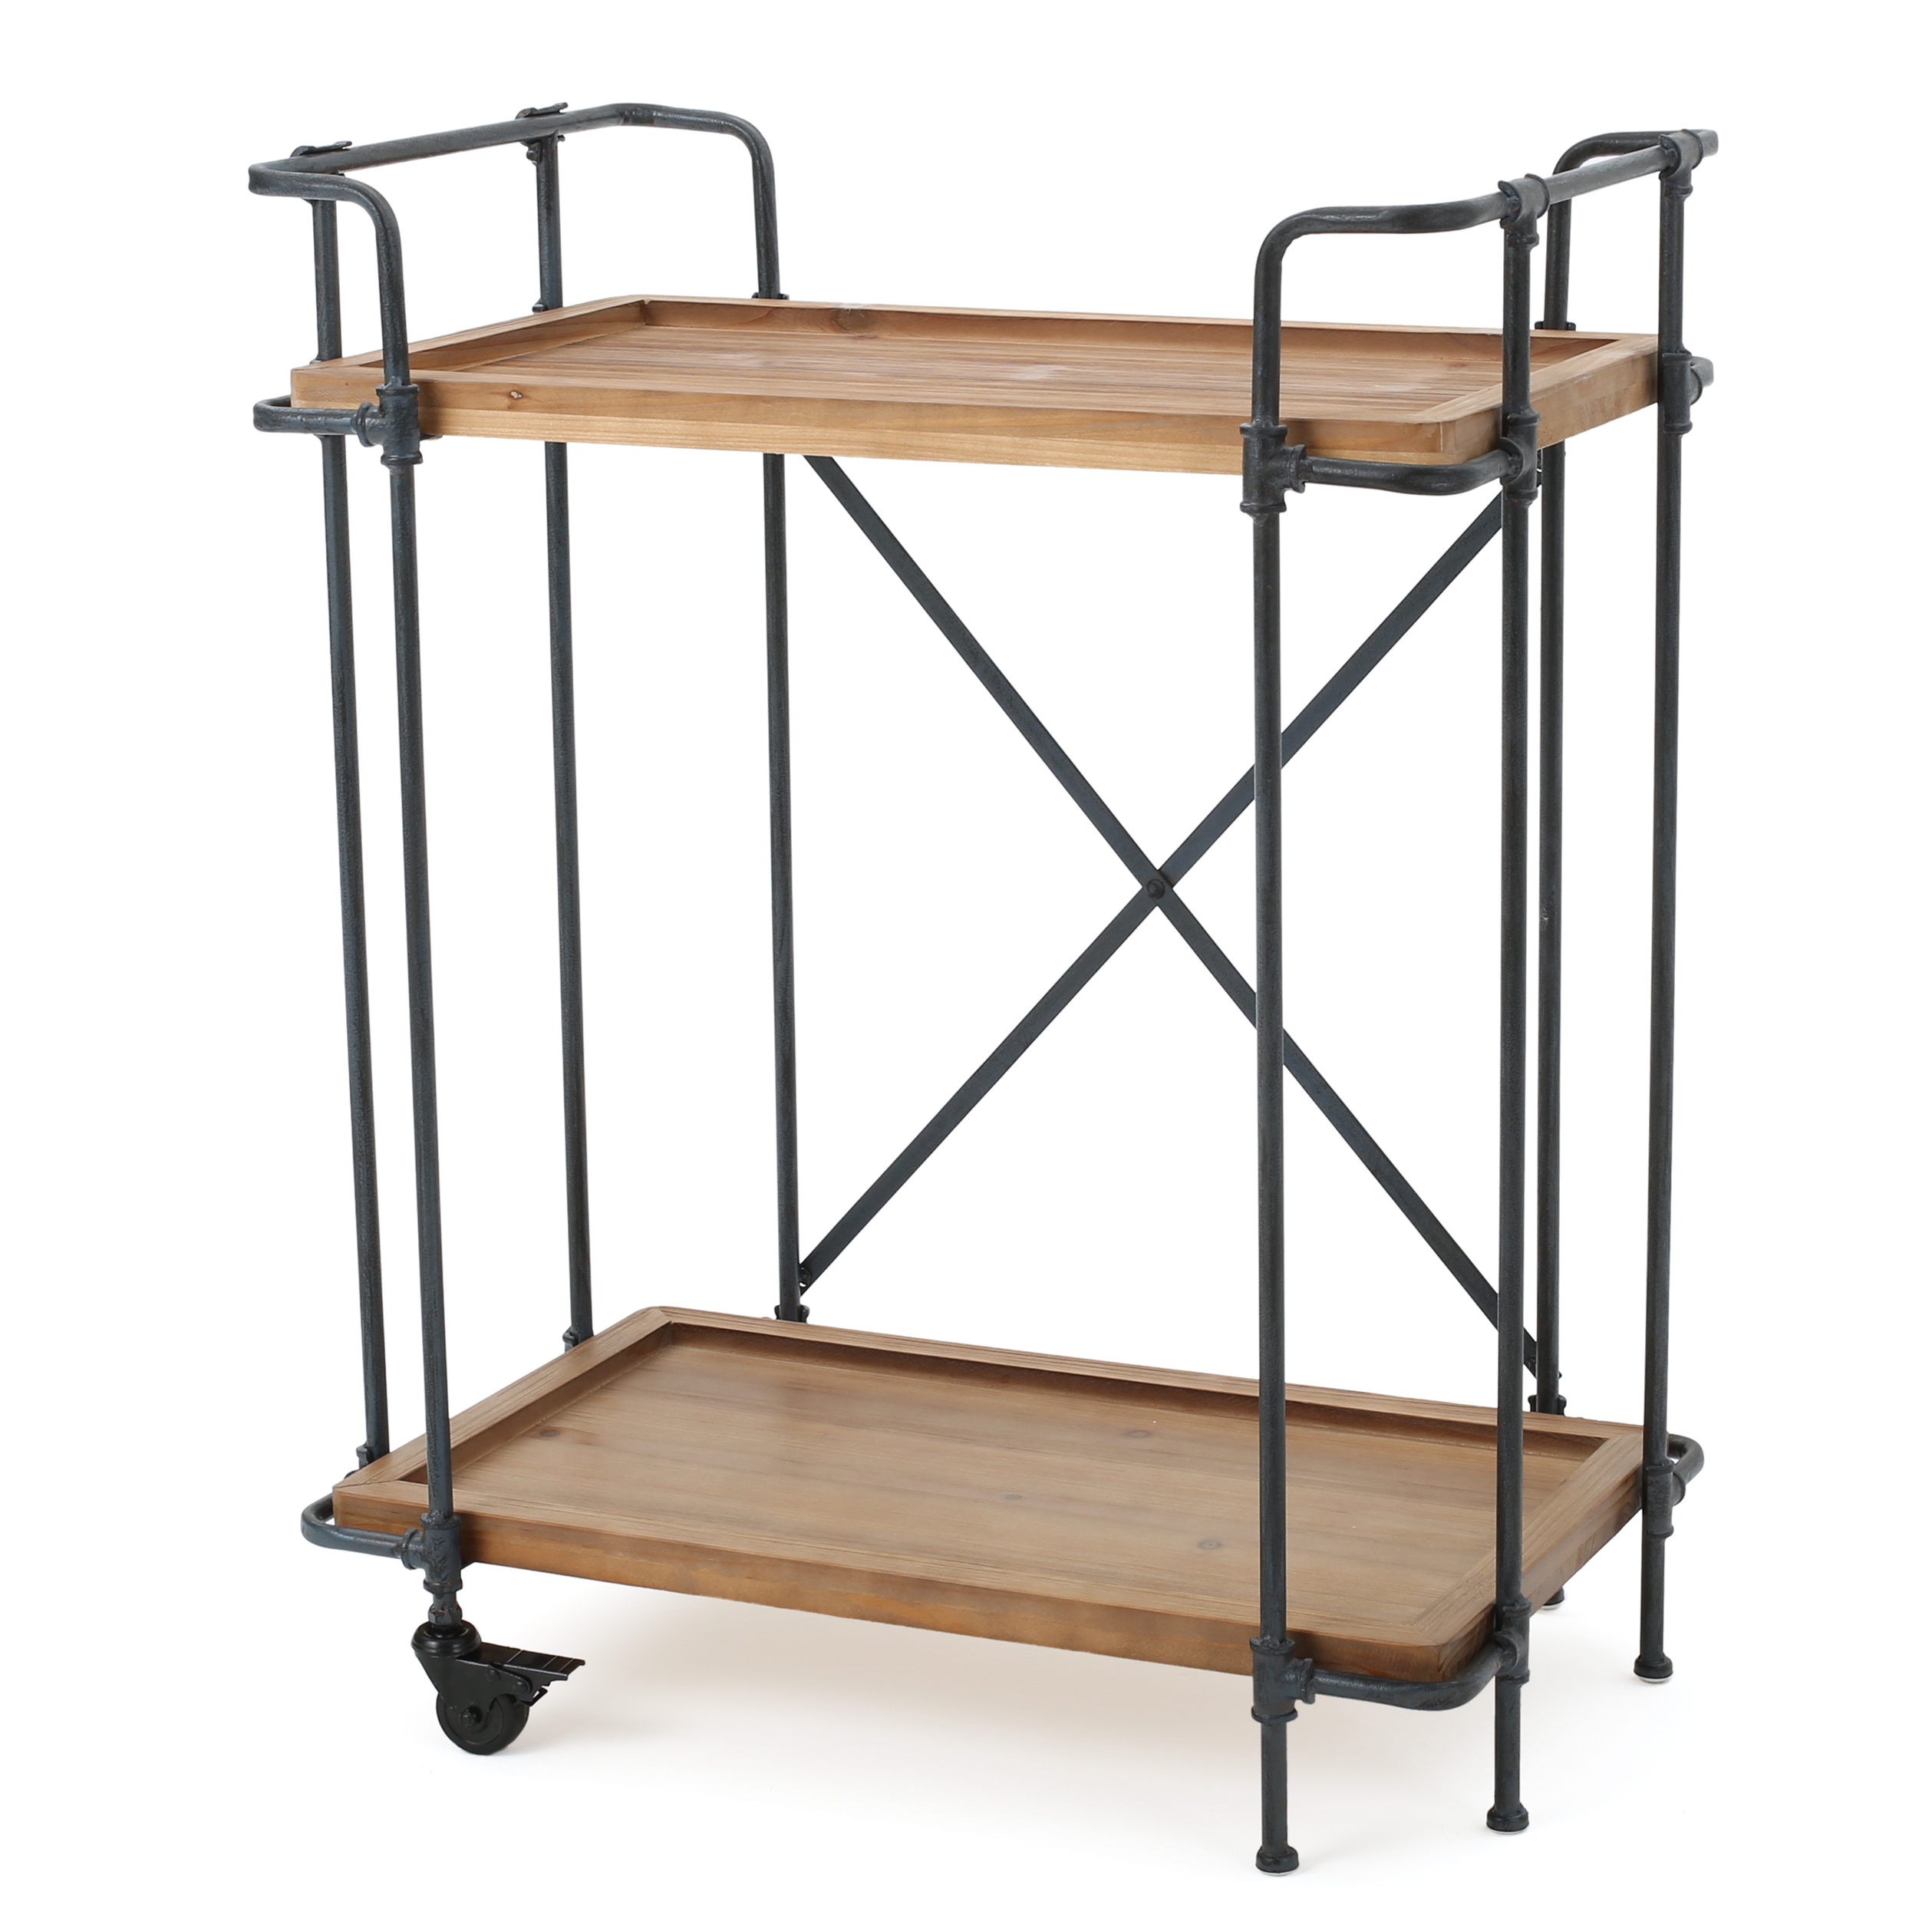 Pisa Outdoor Antique Fir Wood and Iron Bar Cart with Casters